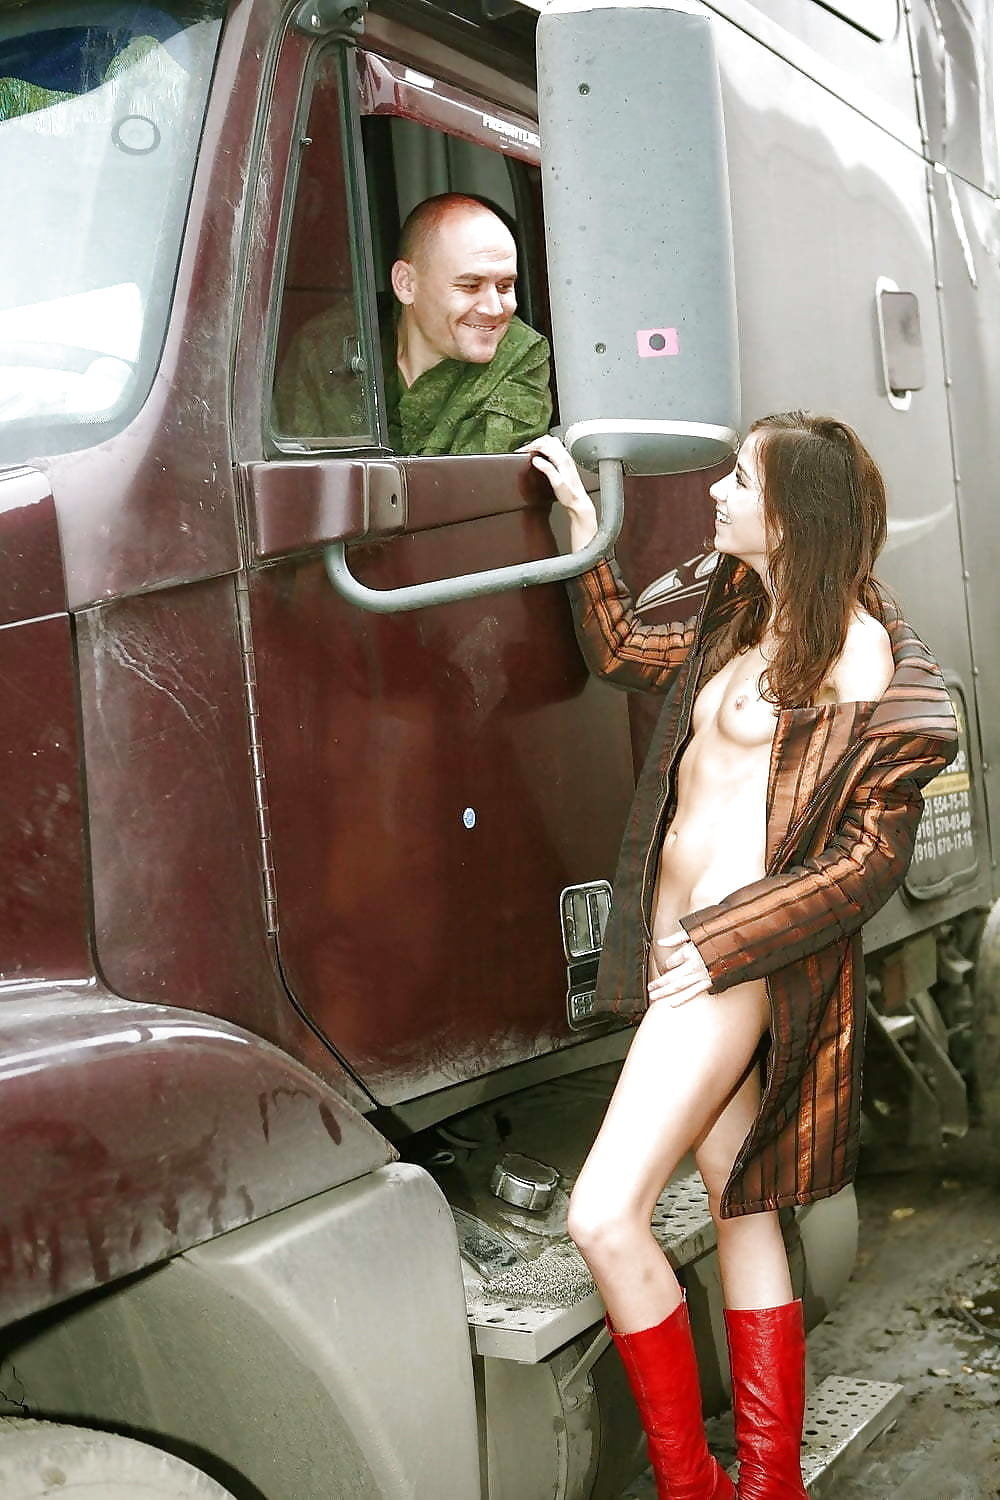 Girl in truck stop porn watched